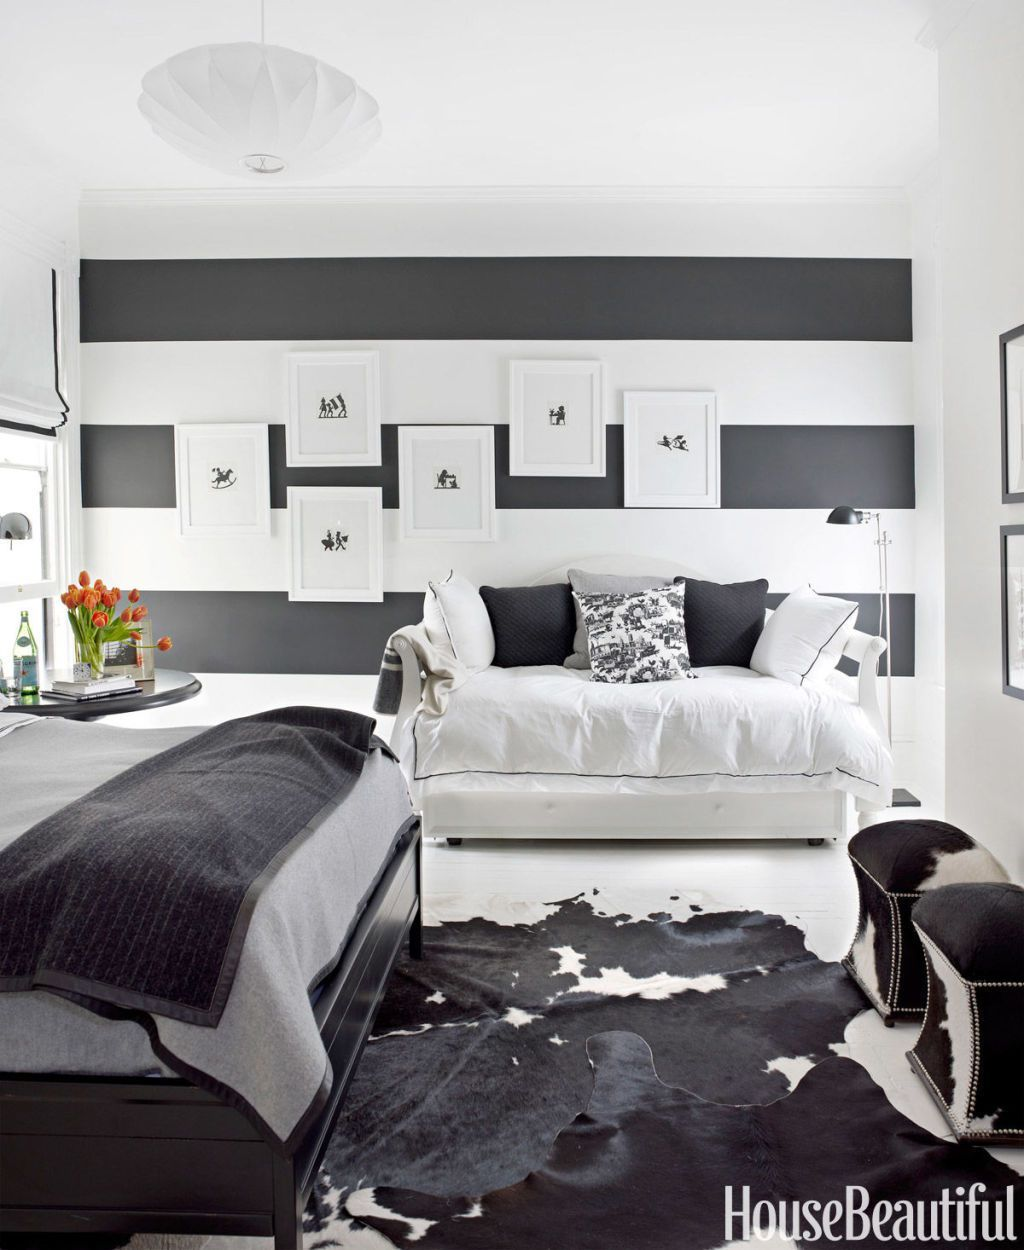 15 Beautiful Black and White Bedroom